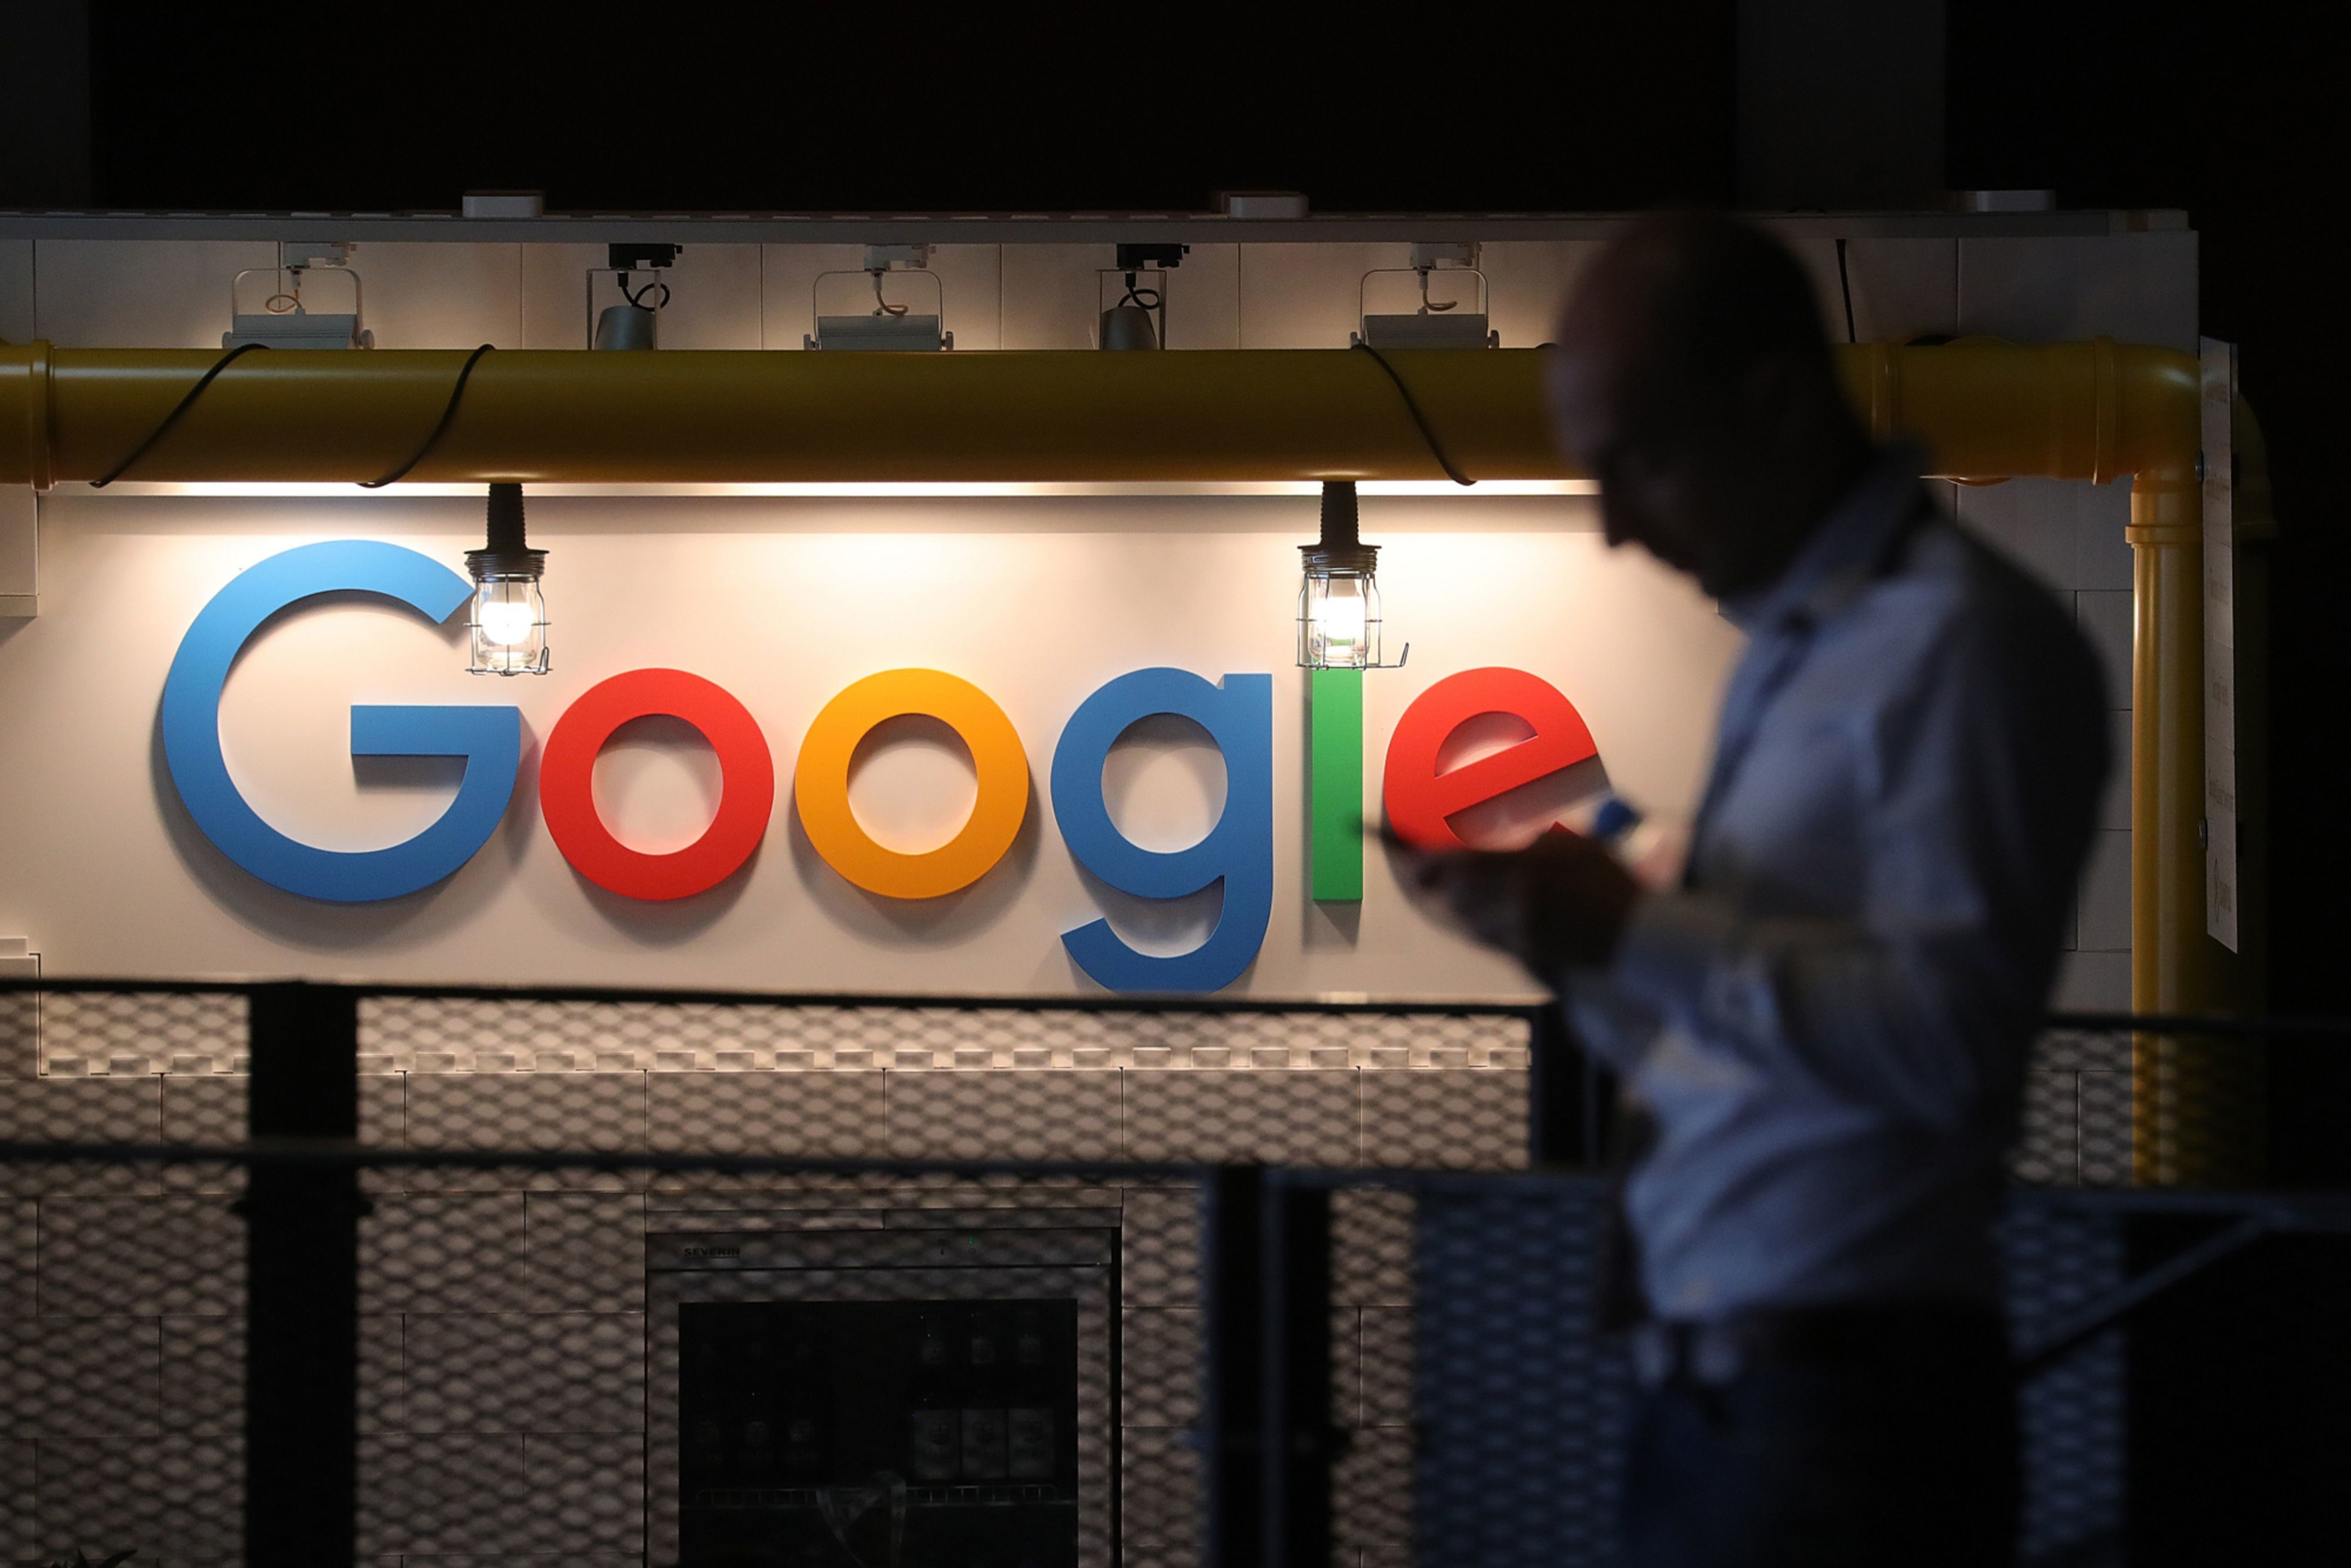 Google faces an EU privacy probe over location tracking